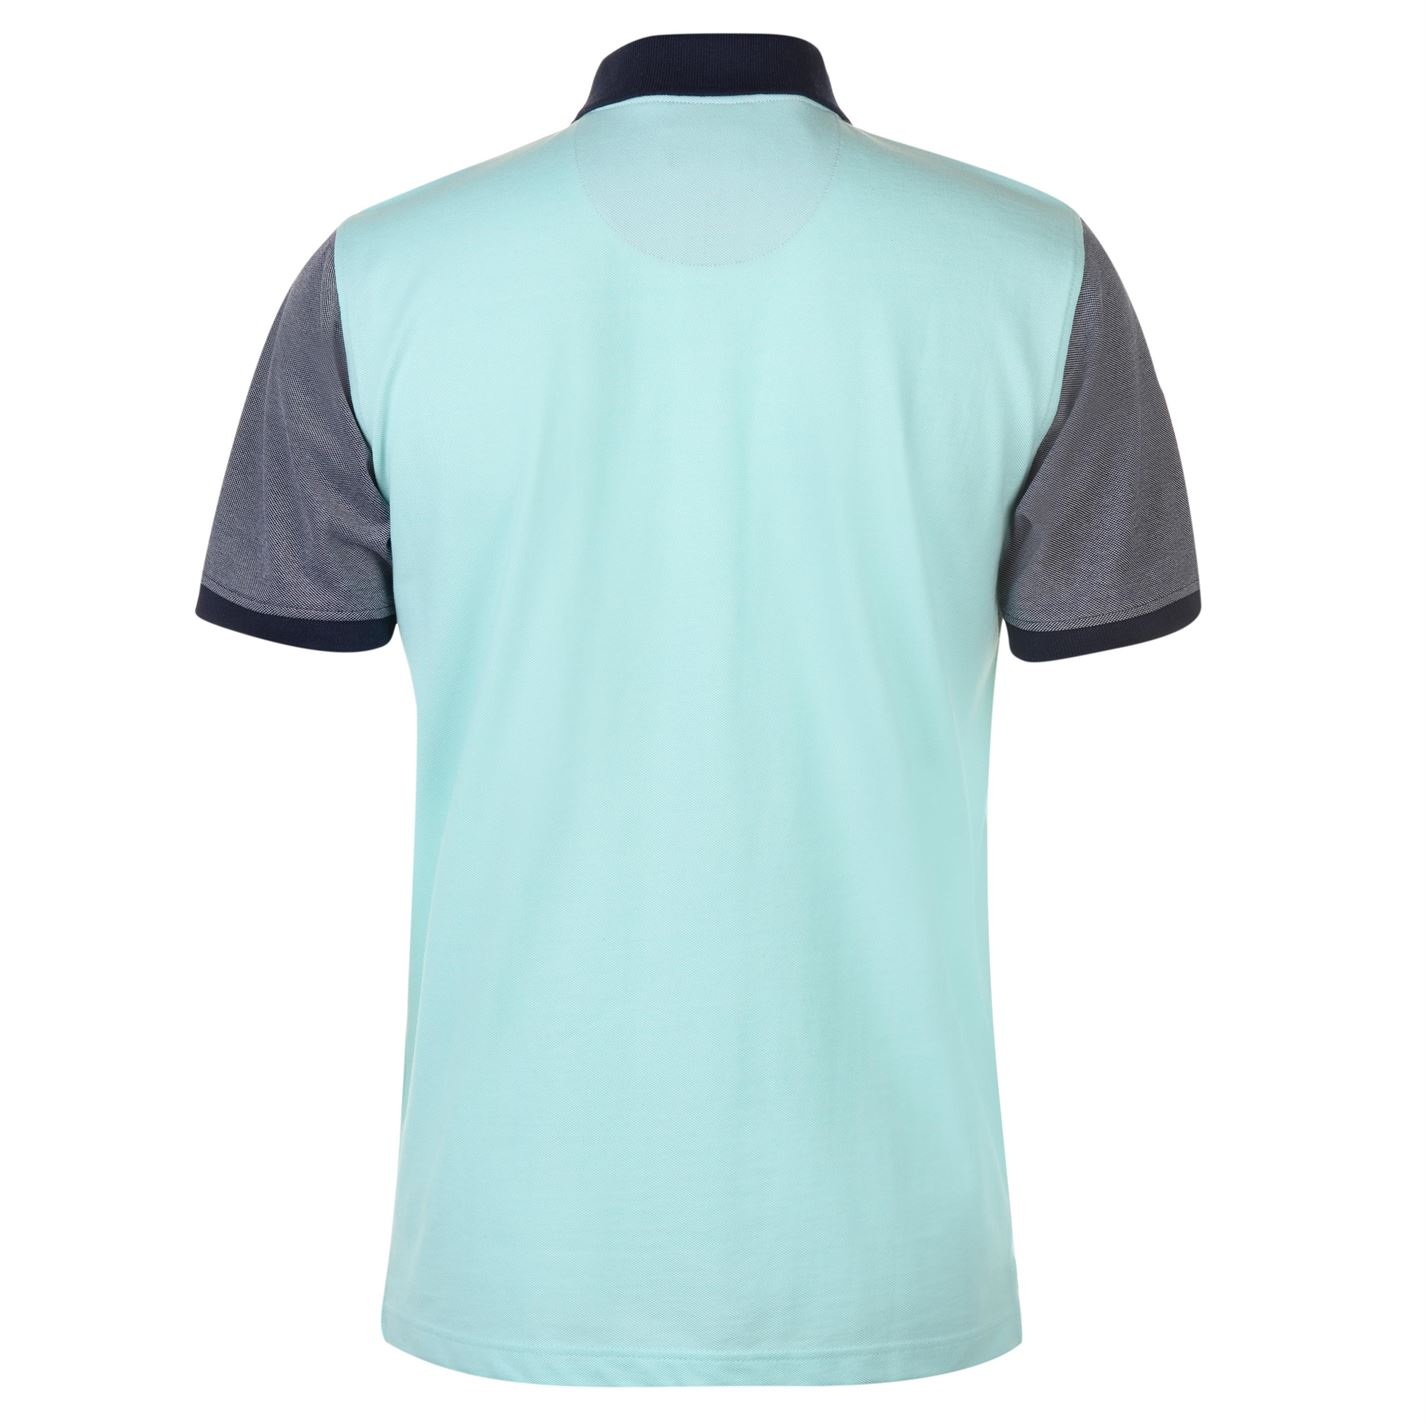 Pierre Cardin Contrast Collar Polo Shirt Mens Gents Classic Fit Tee Top